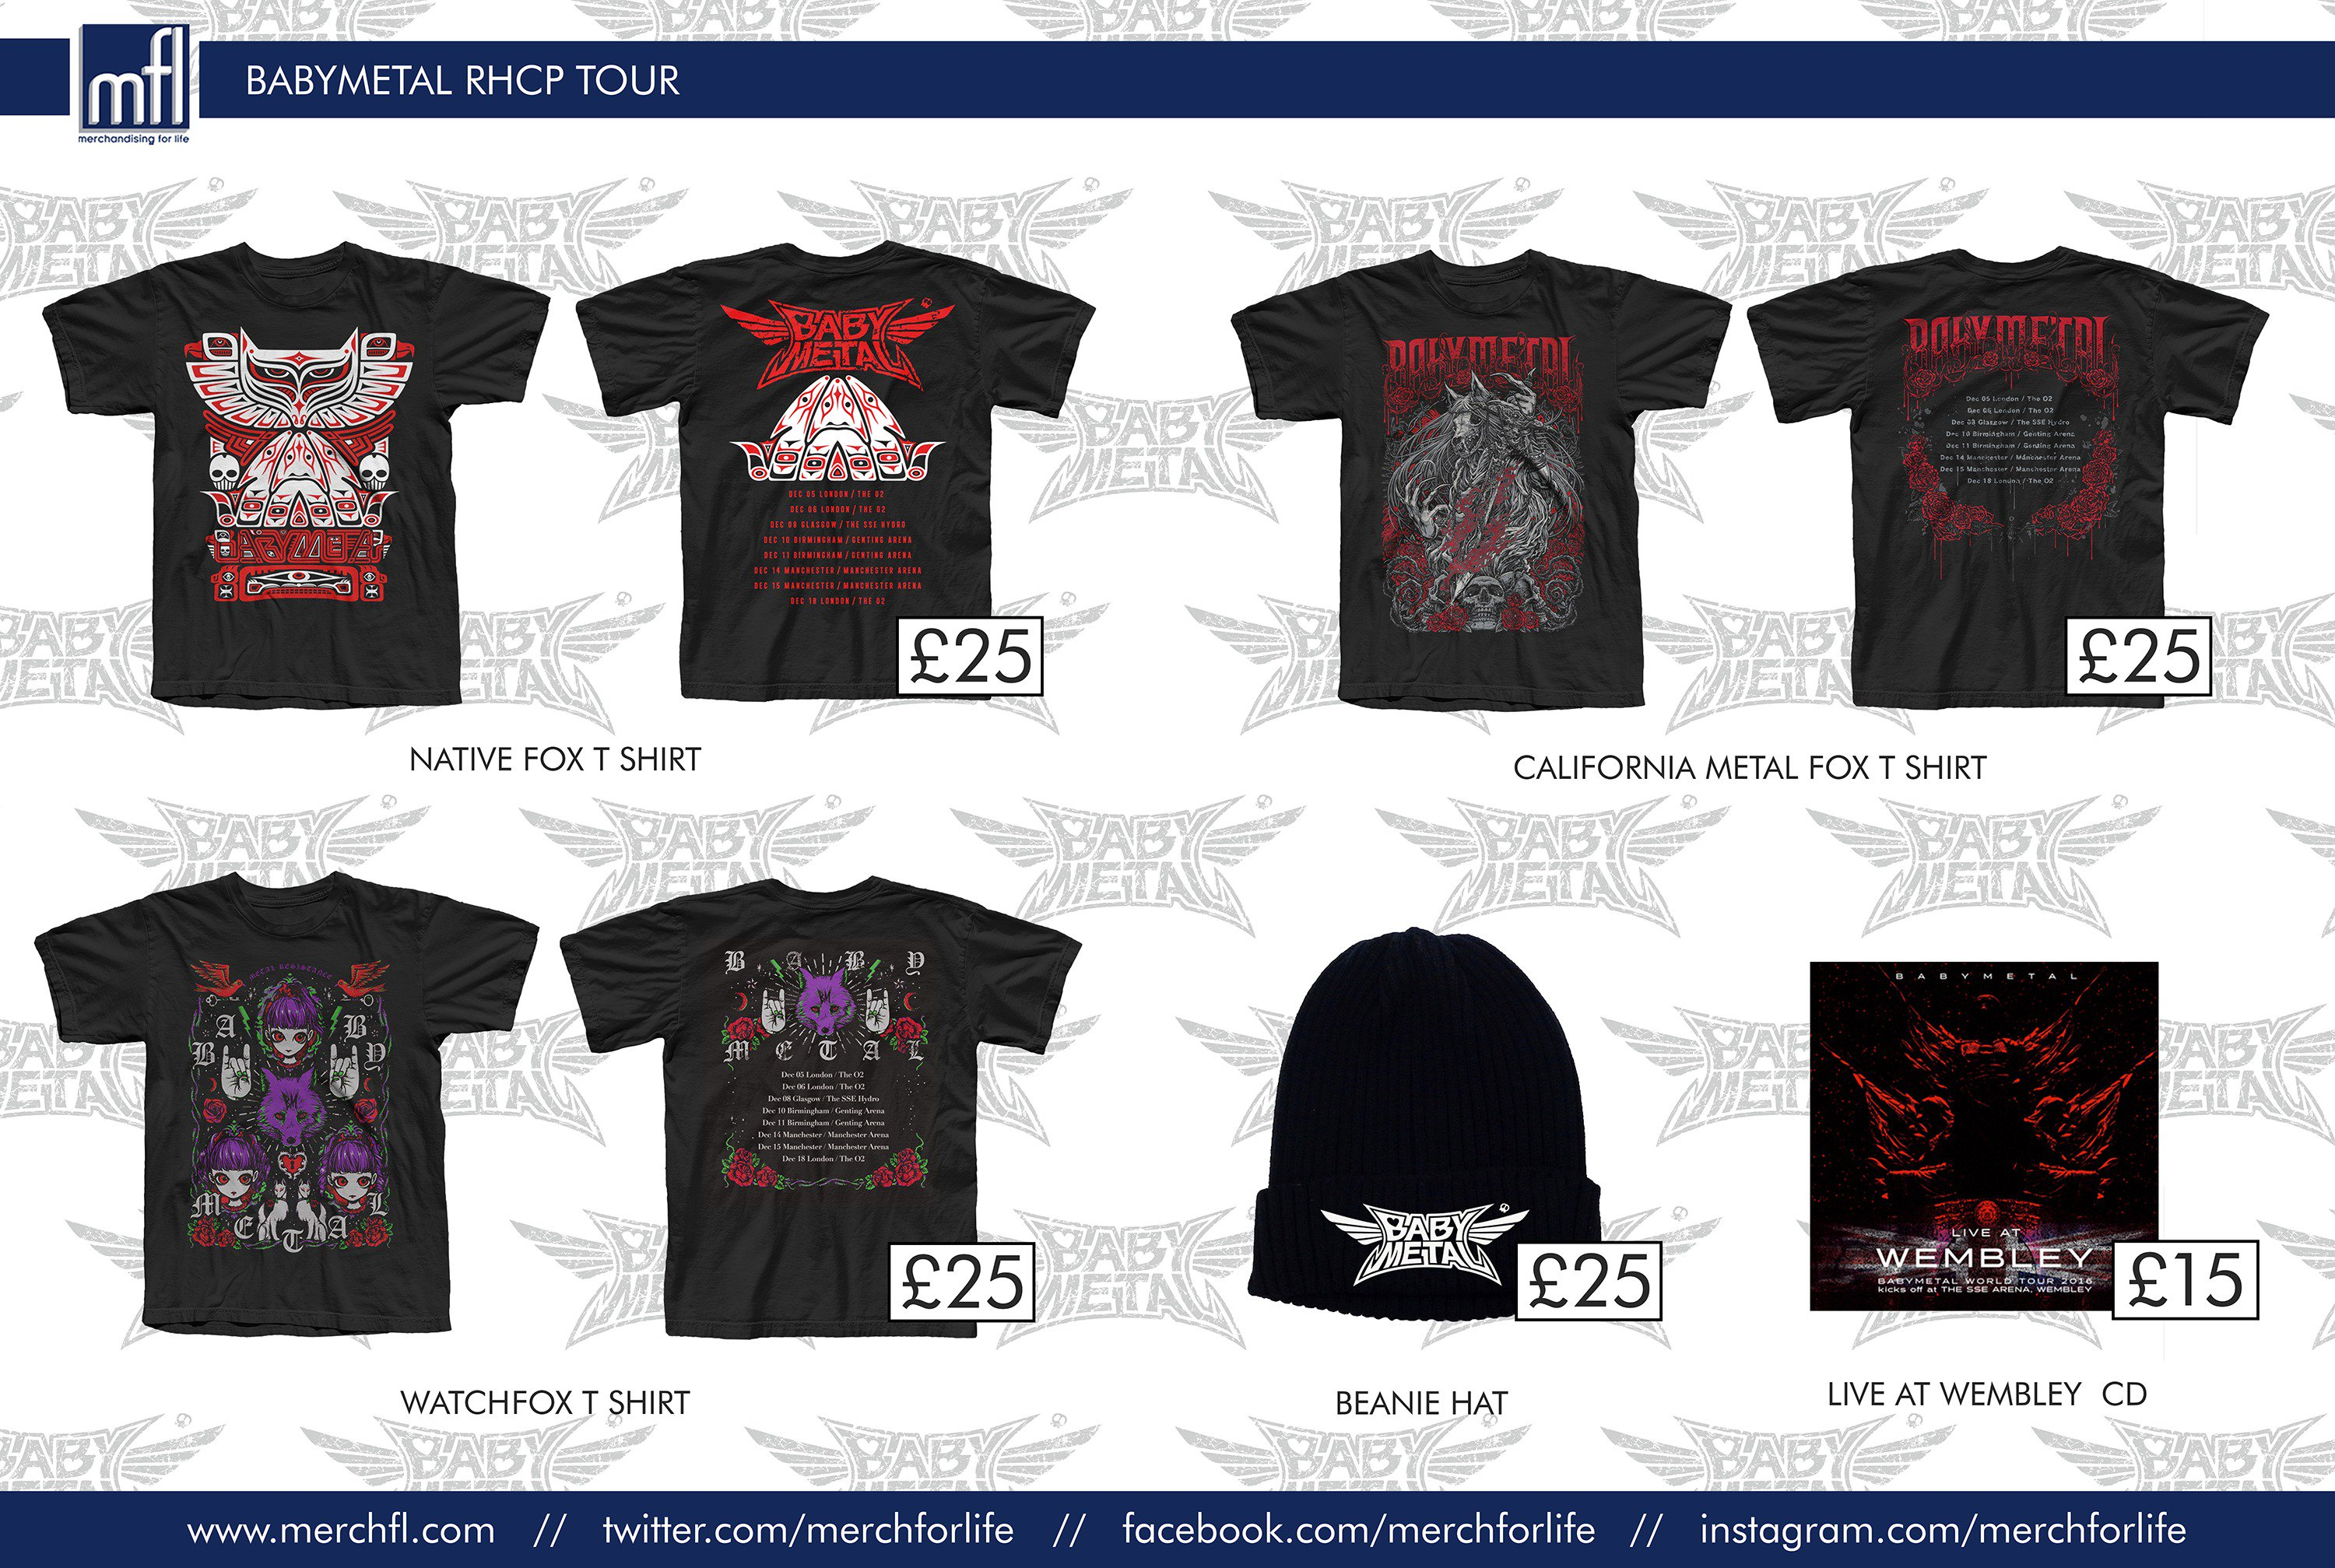 f0aee9dbb Merch for BABYMETAL and RHCP gigs : BABYMETAL